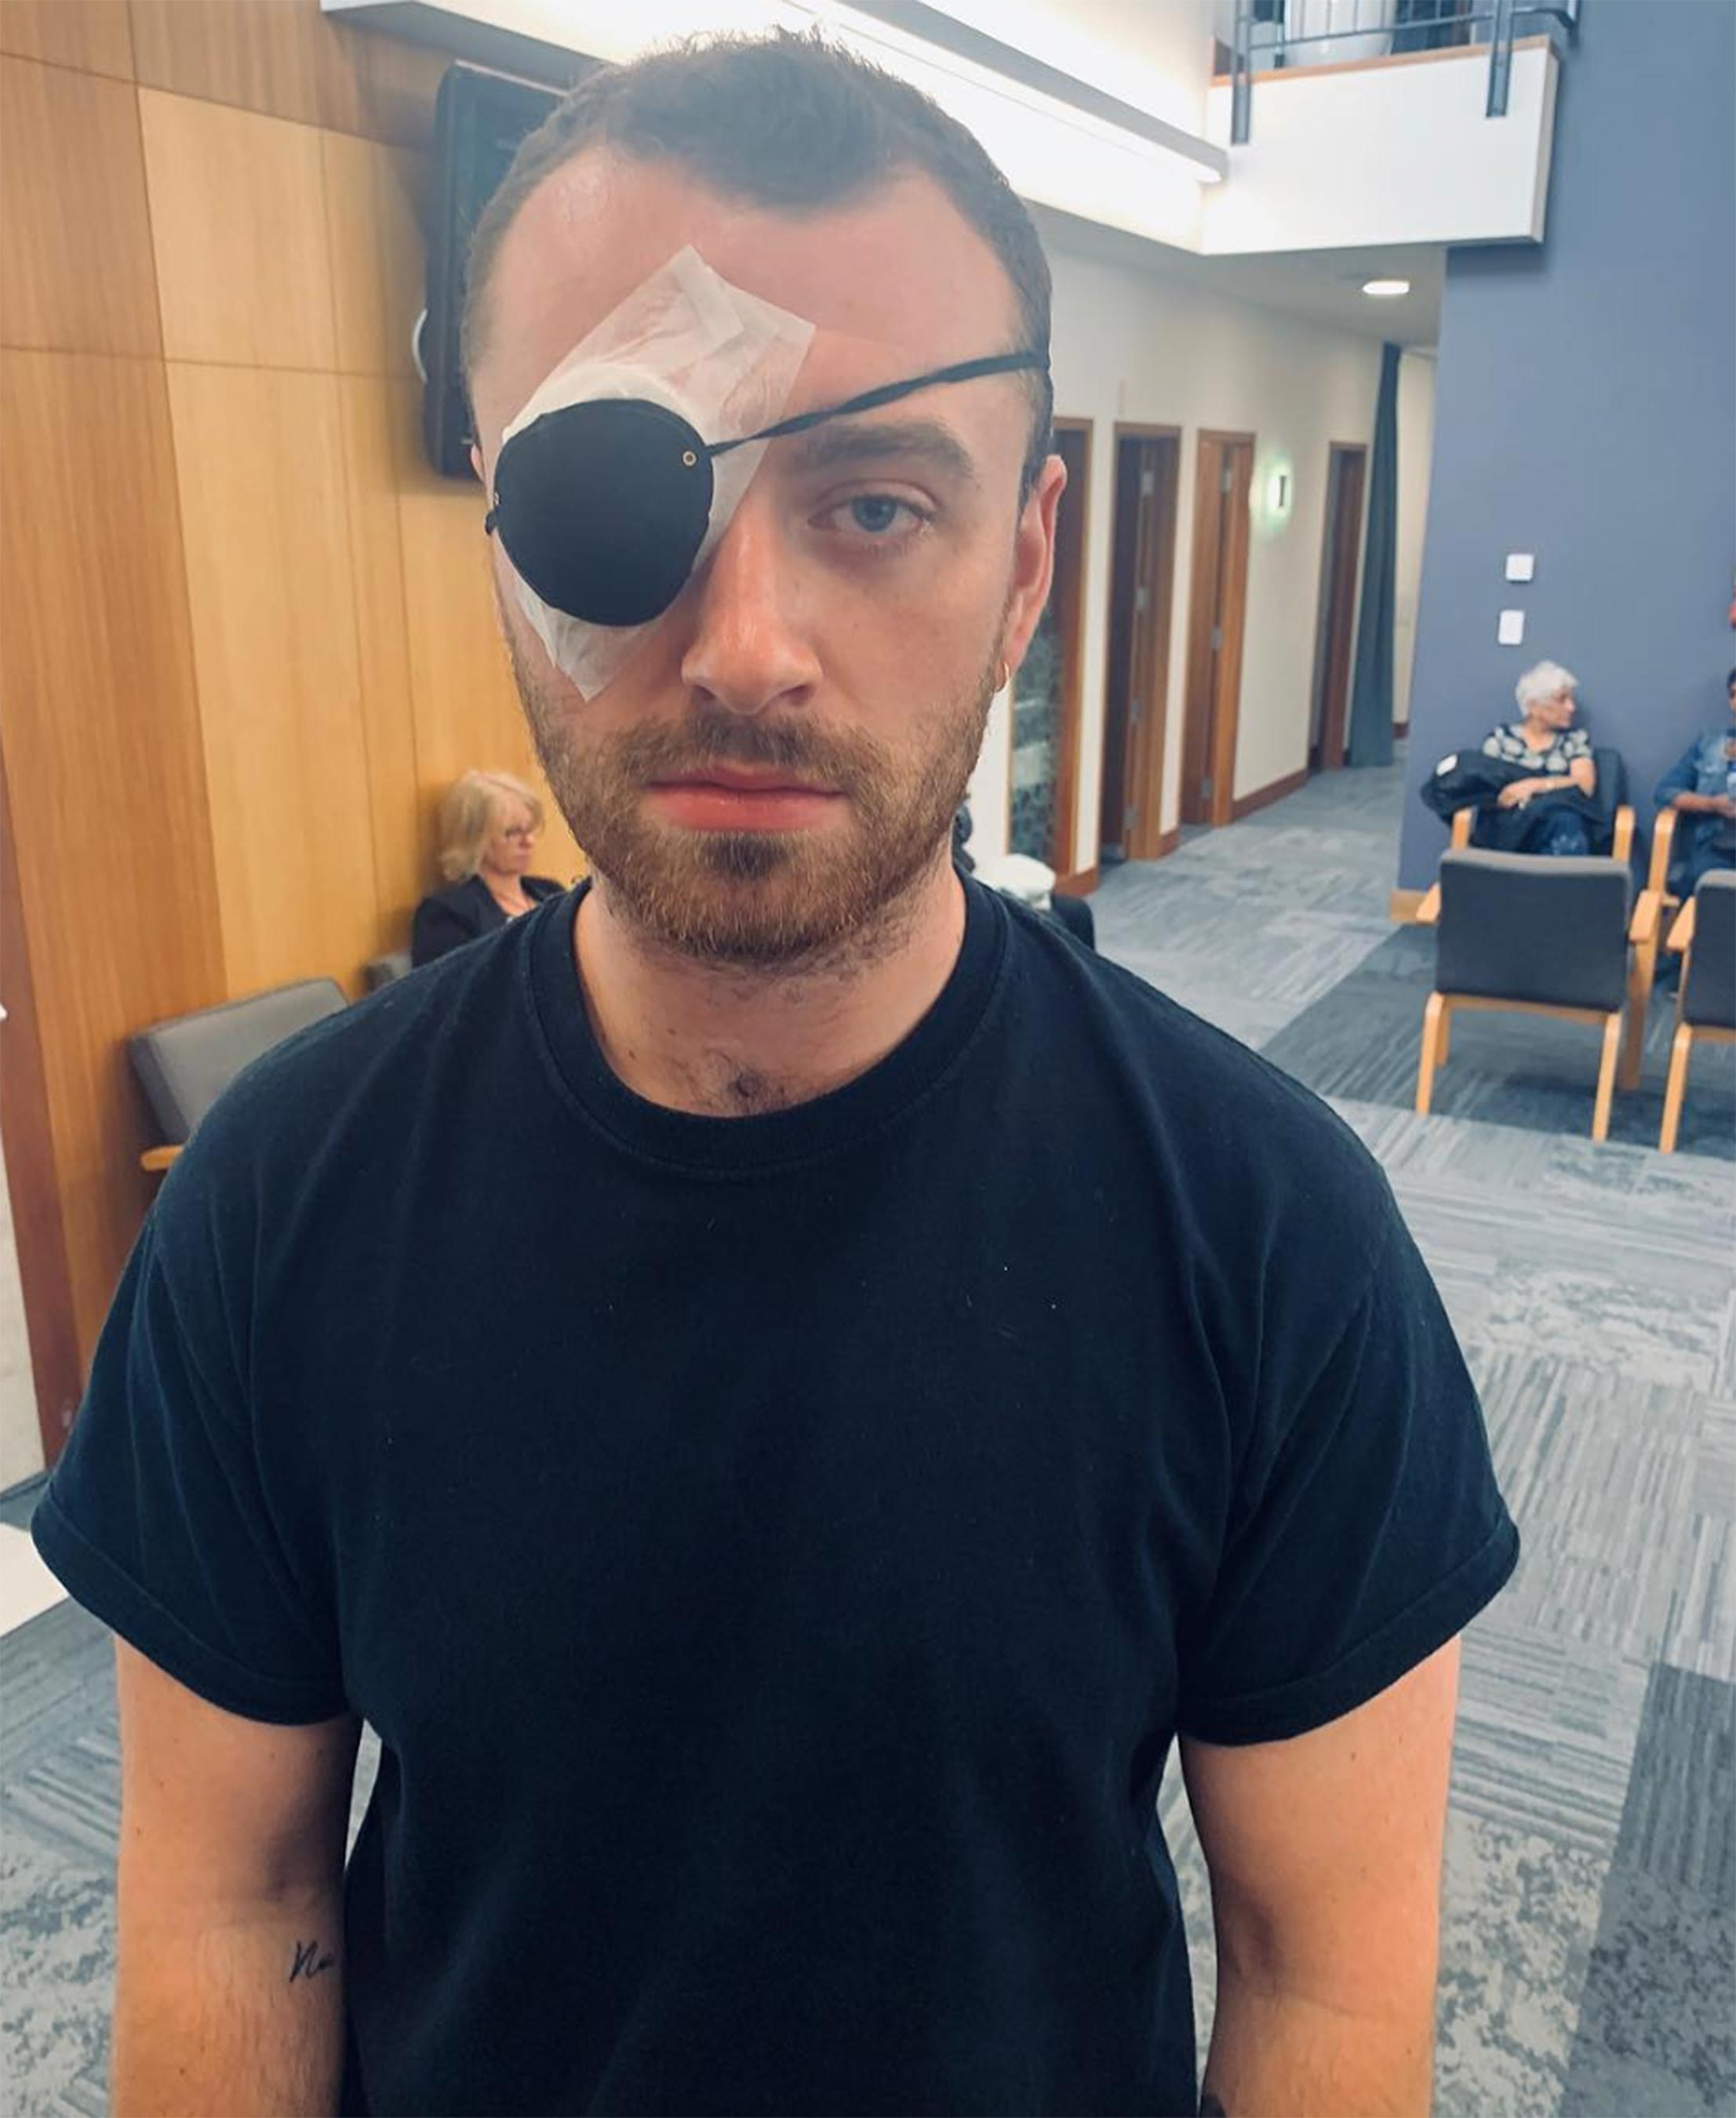 Sam Smith Jokes About Eye Infection Surgery: 'Stye with Me'